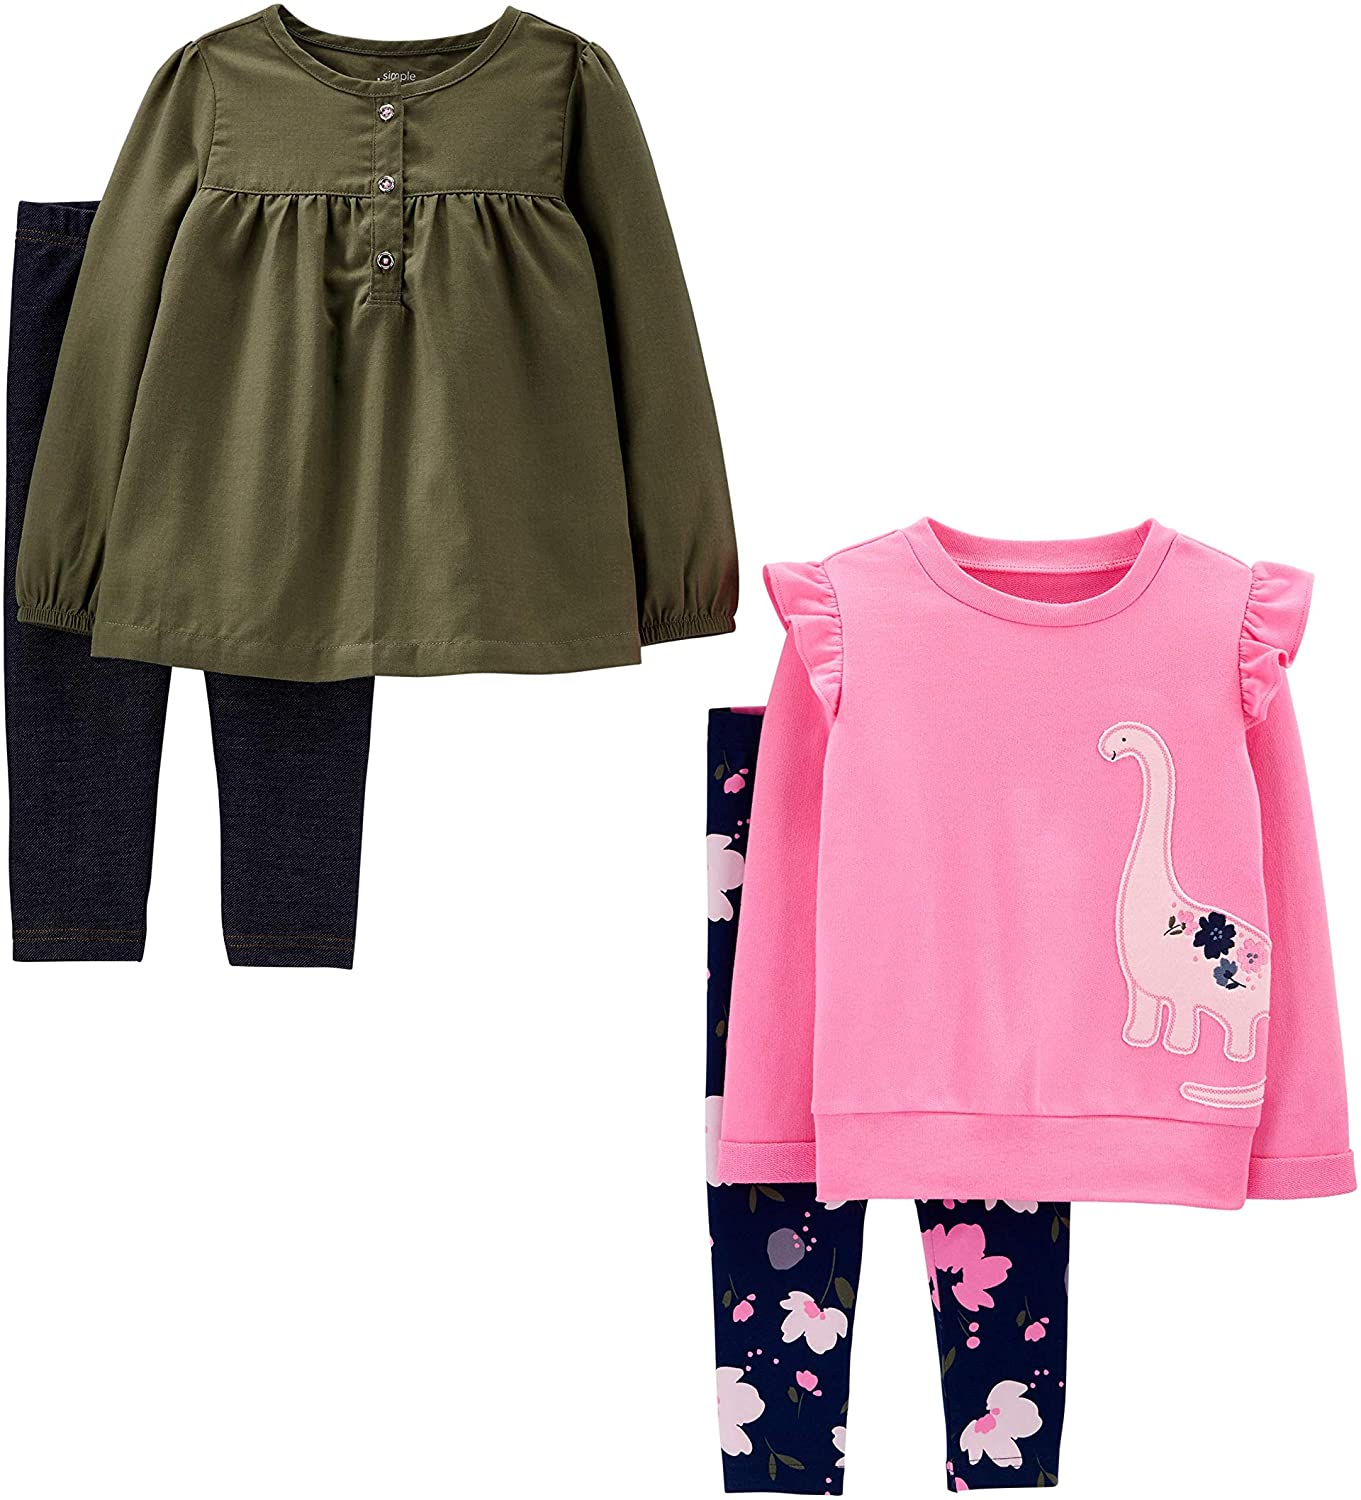 Simple Joys by Carters 4-Piece Long-Sleeve Shirts And Pants Playwear Set Unisex-Bimbi 0-24